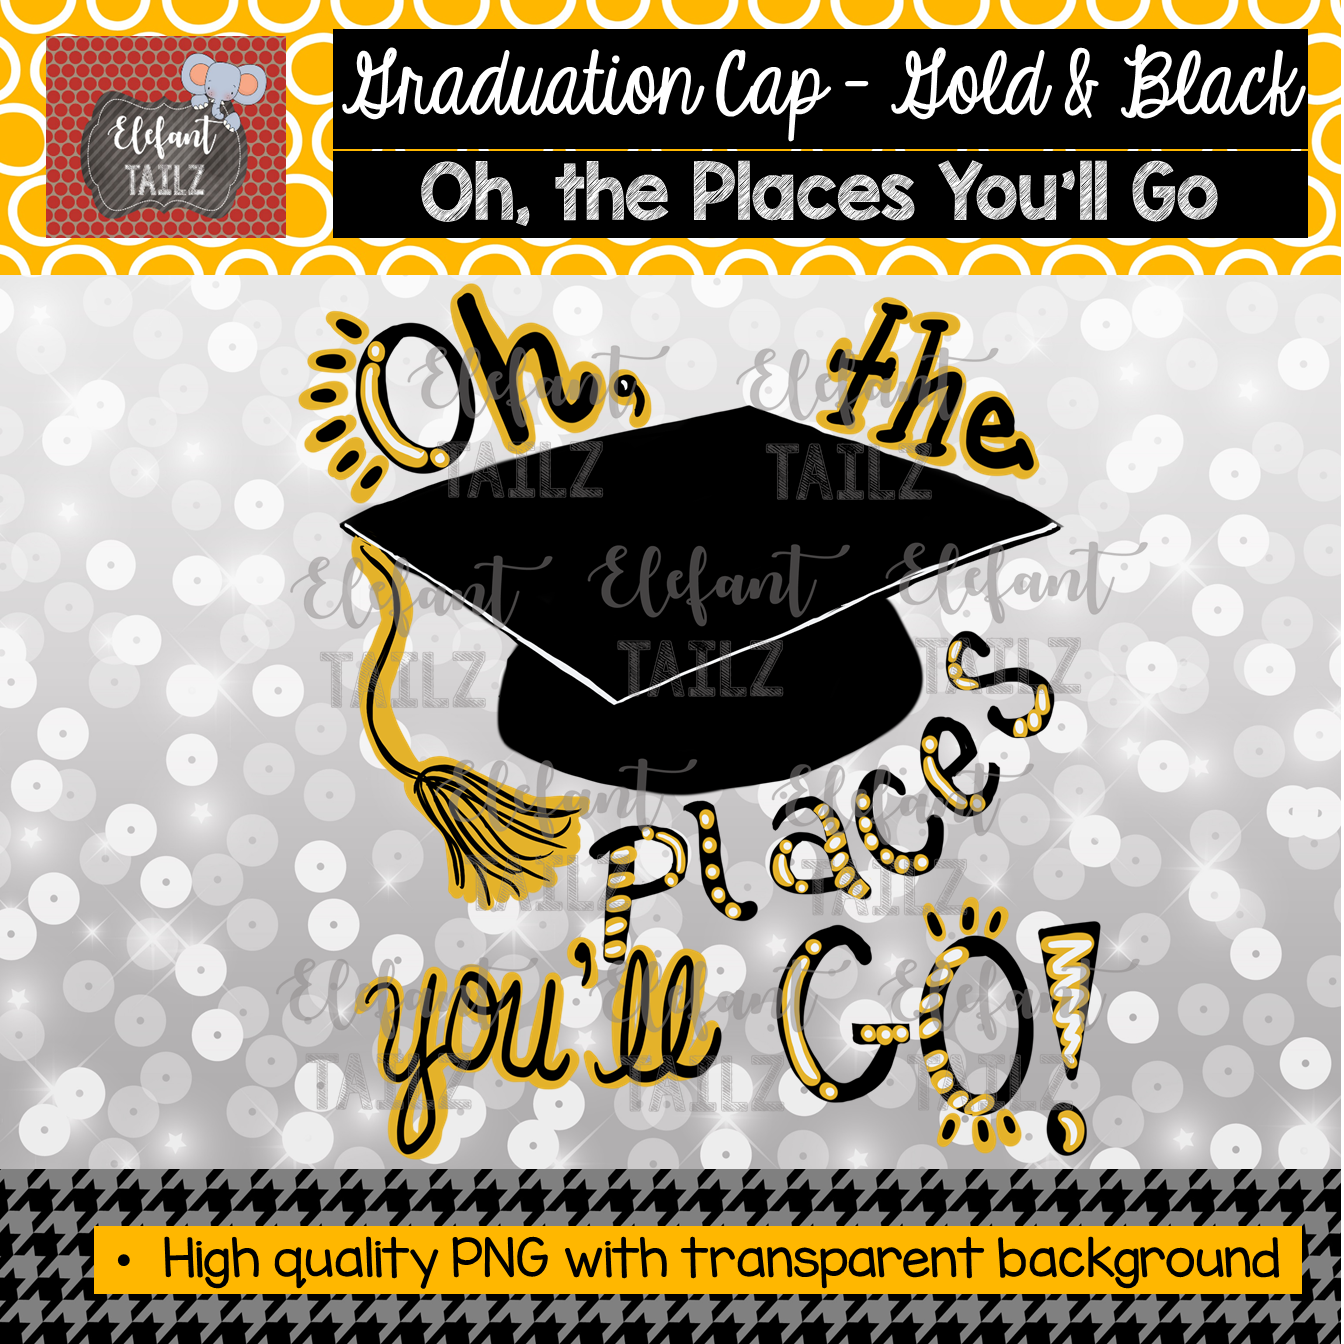 Graduation Cap Oh Places You'll Go - Gold & Black